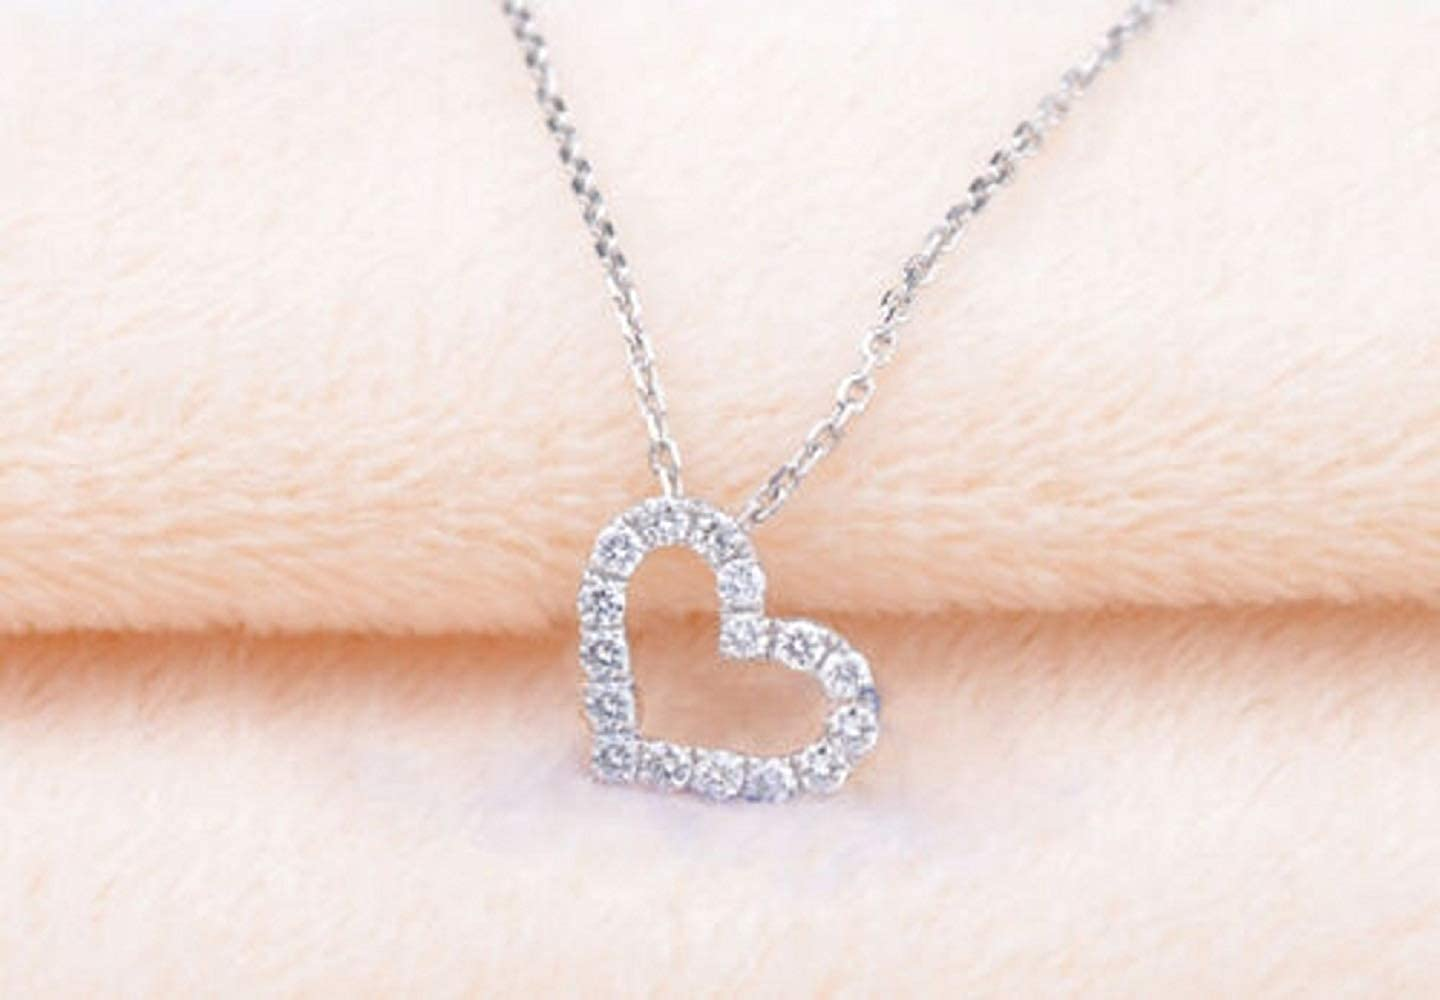 0.20 Ct Round Cut Simulated Diamond Heart Pendant With 18 Chain In 14K White Gold Plated .925 Silver